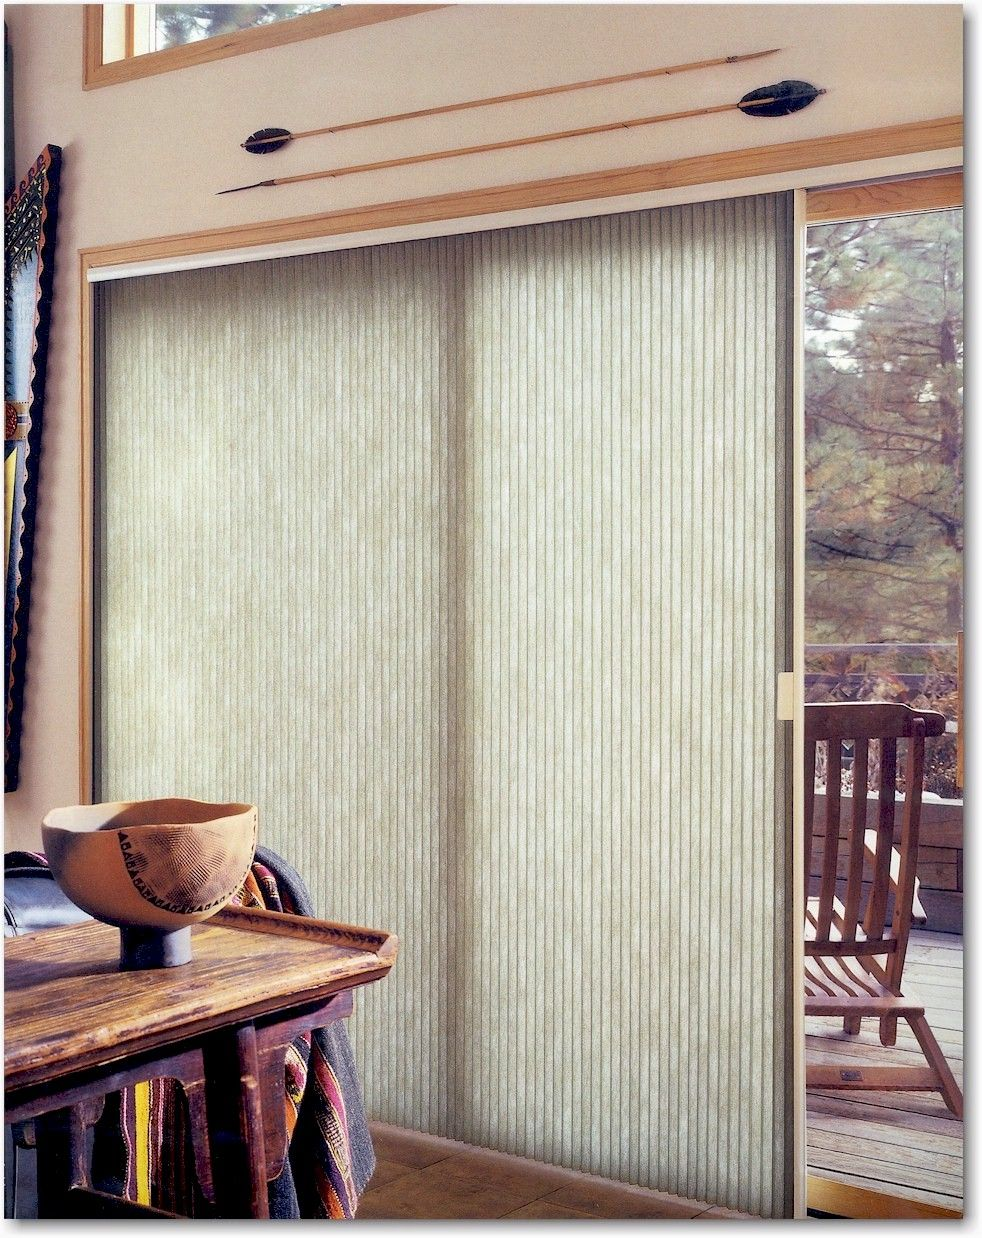 Hunter Douglas Vertiglide Vertical Pleat System Is The Ideal Choice For Side To Openings Sliding Gl Doors Or As A Room Divider